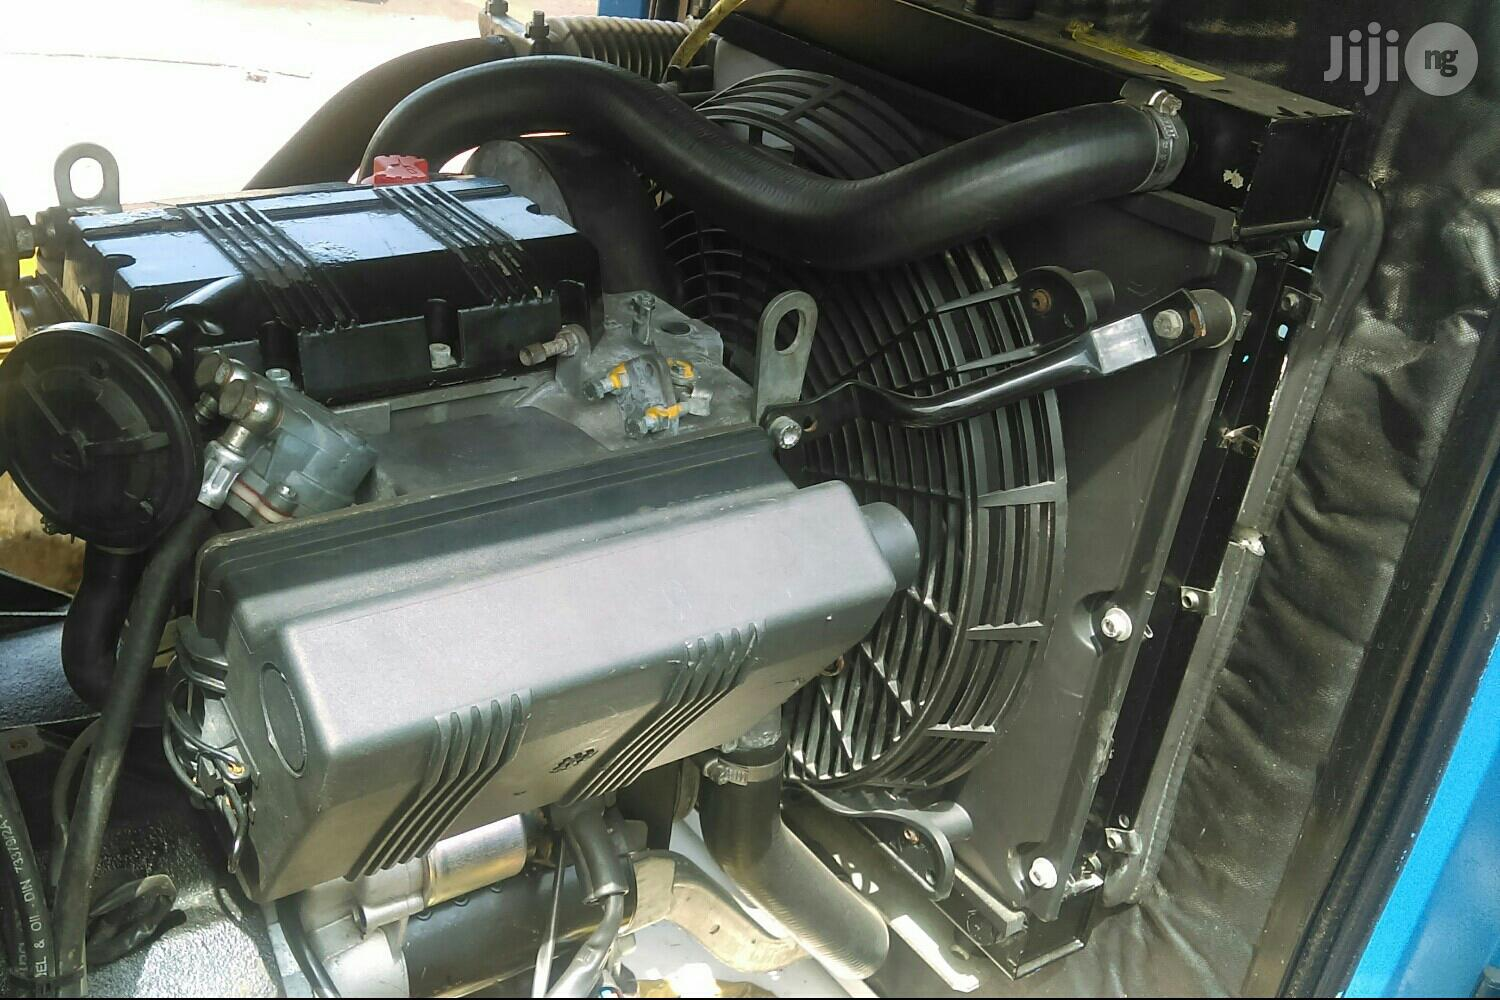 15kva Super Silent Soundproof Generator | Electrical Equipment for sale in Alimosho, Lagos State, Nigeria